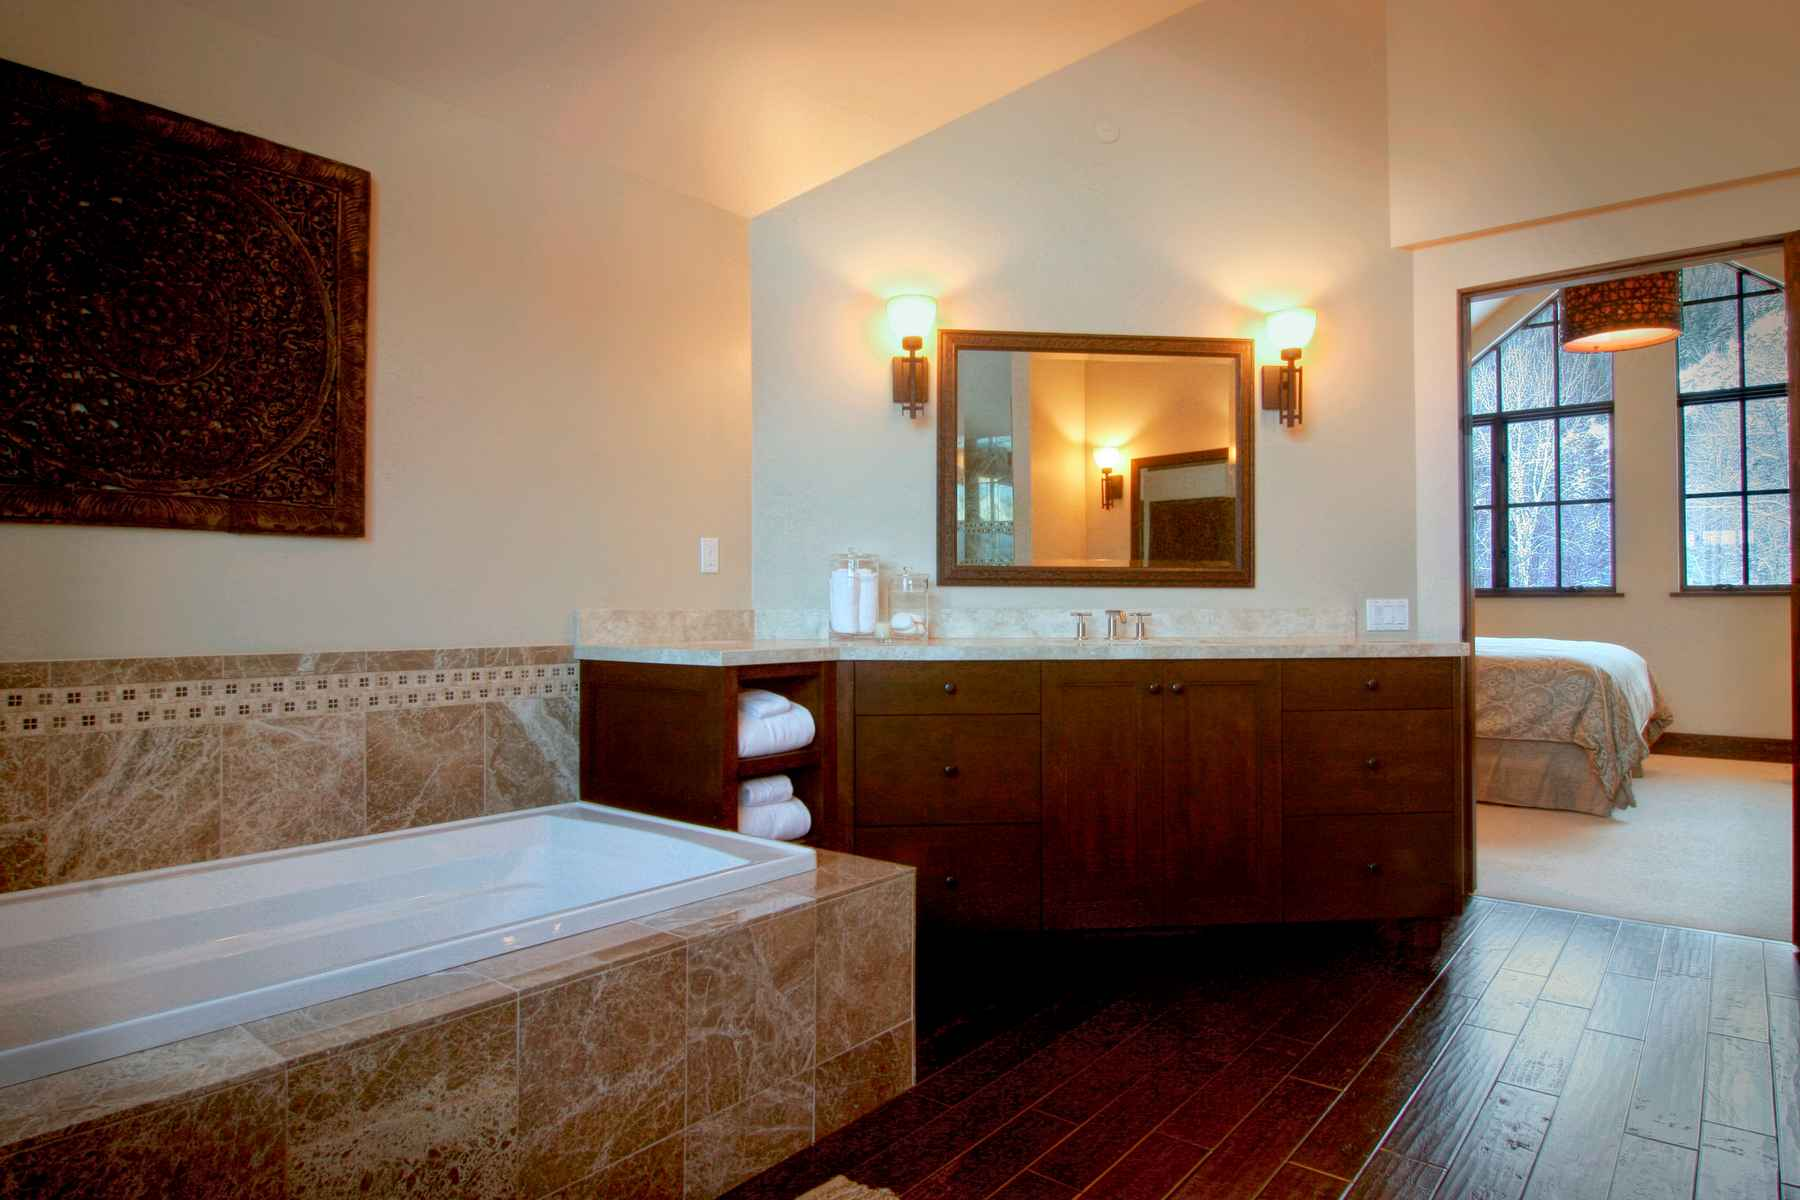 Additional photo for property listing at Luxury West Ketchum Townhouse 101 Williams St #10 Ketchum, Idaho 83340 États-Unis